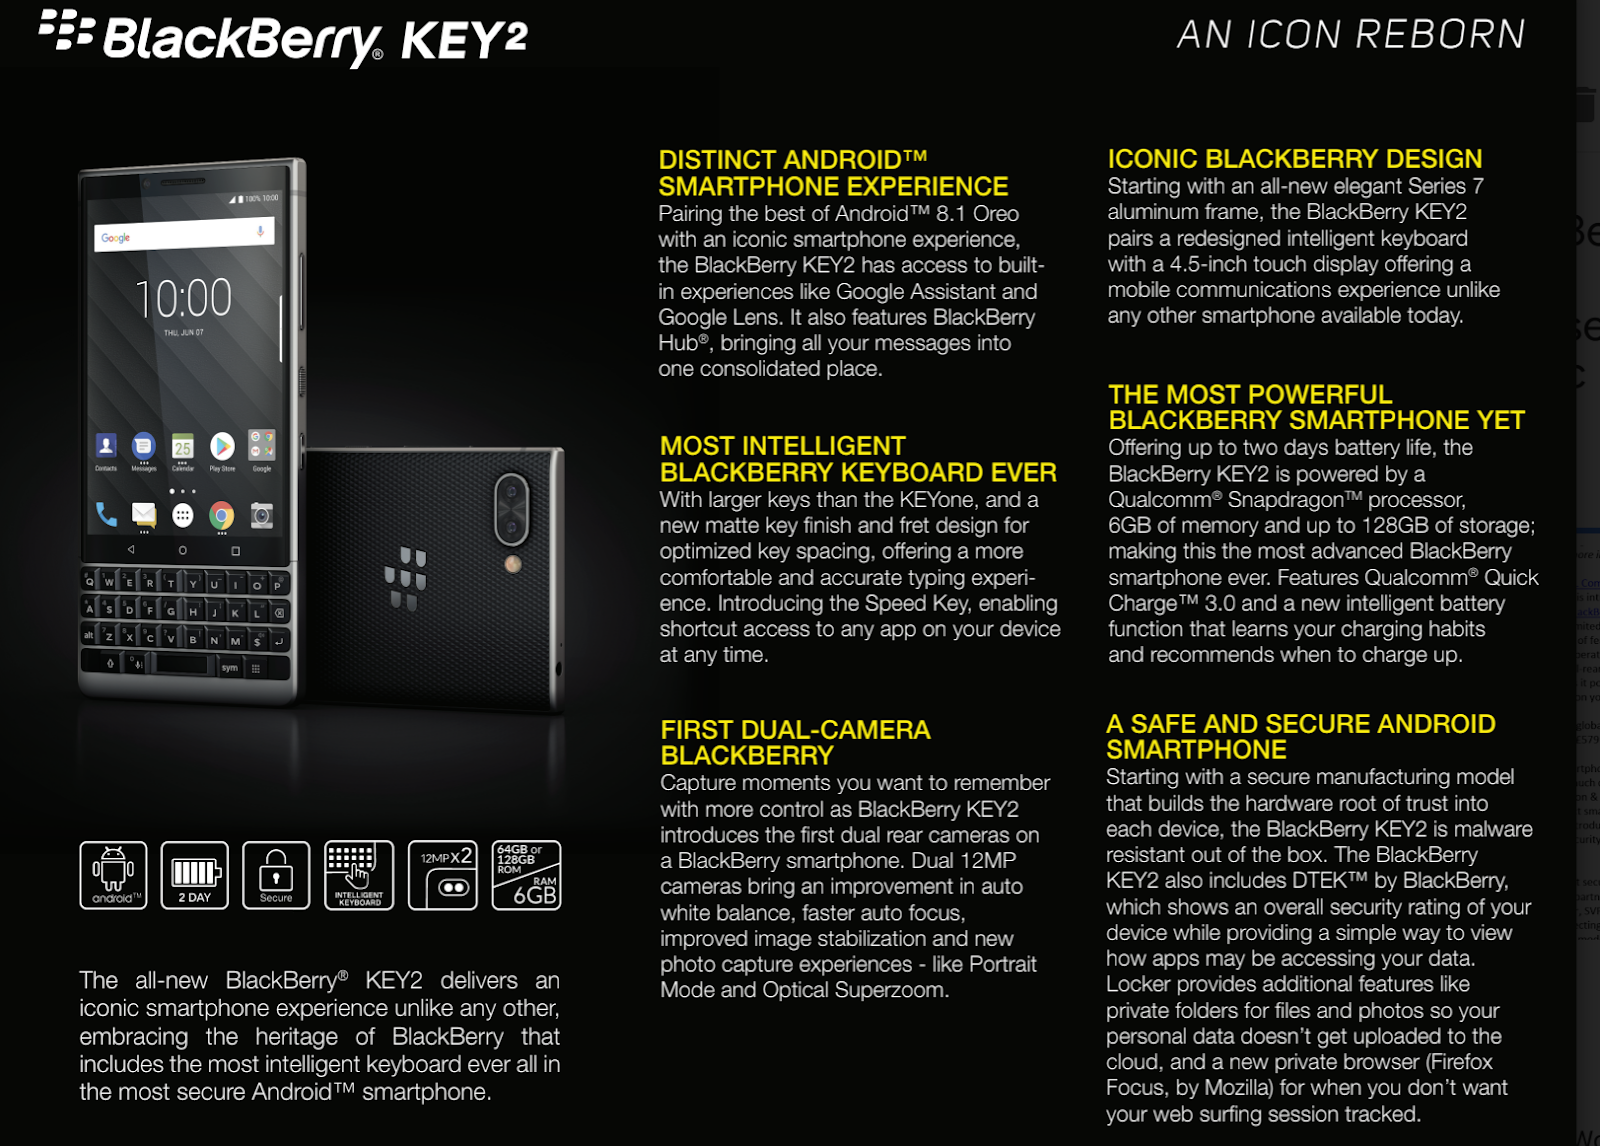 The BlackBerry Key2 - an icon reborn ~ Android Coliseum